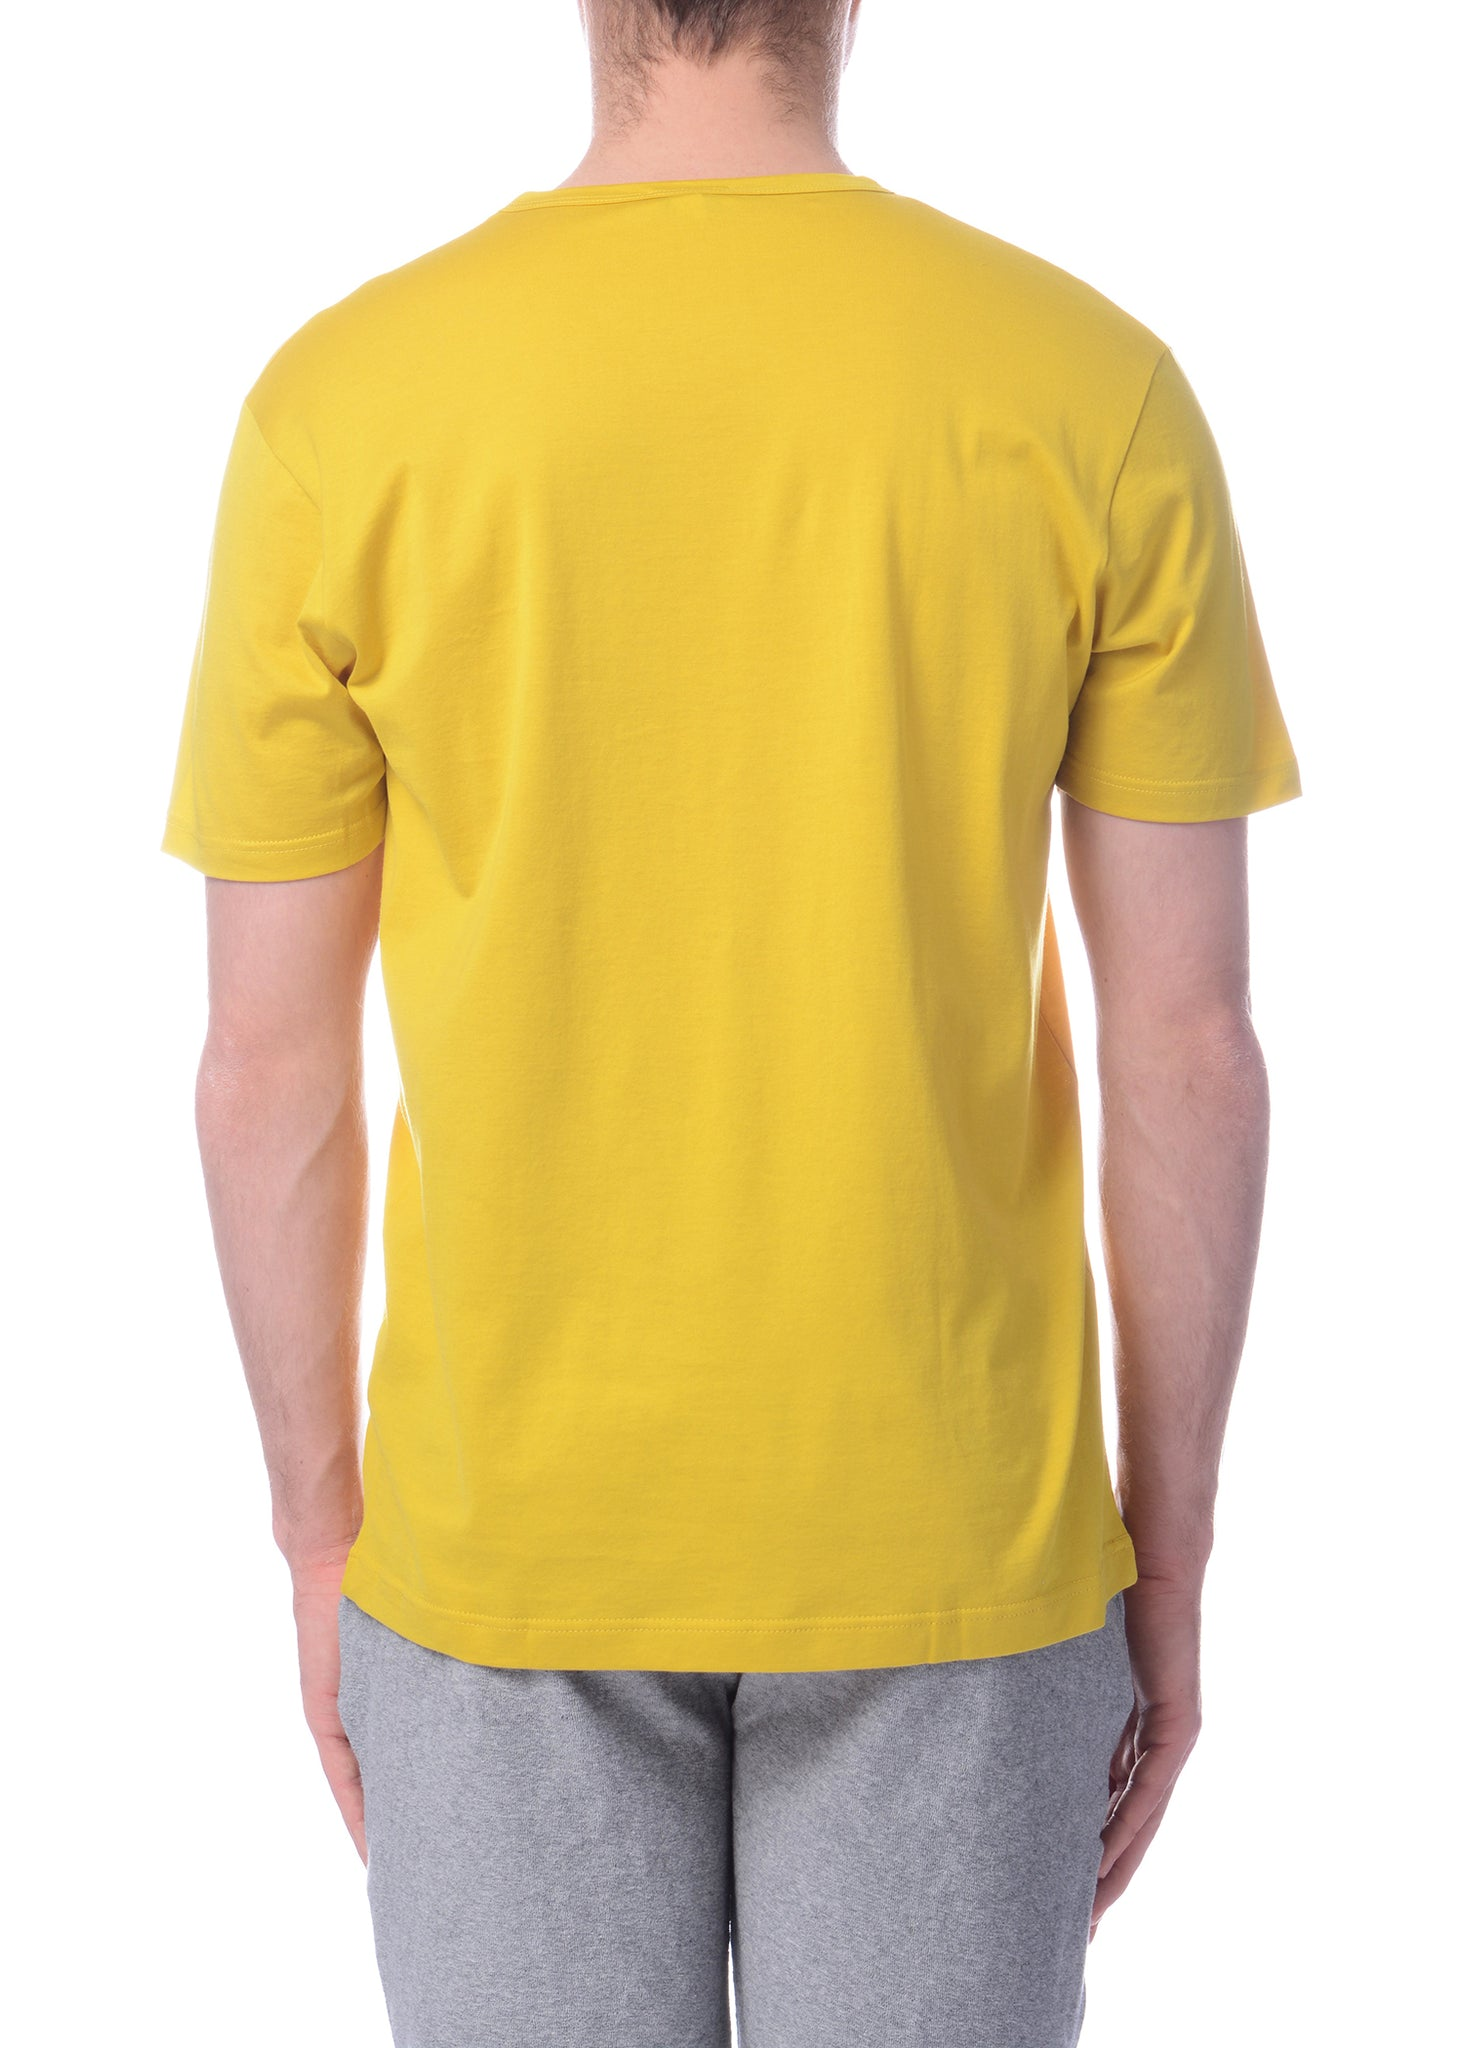 T-Shirt Col Rond Jaune|Yellow Crewneck T-Shirt